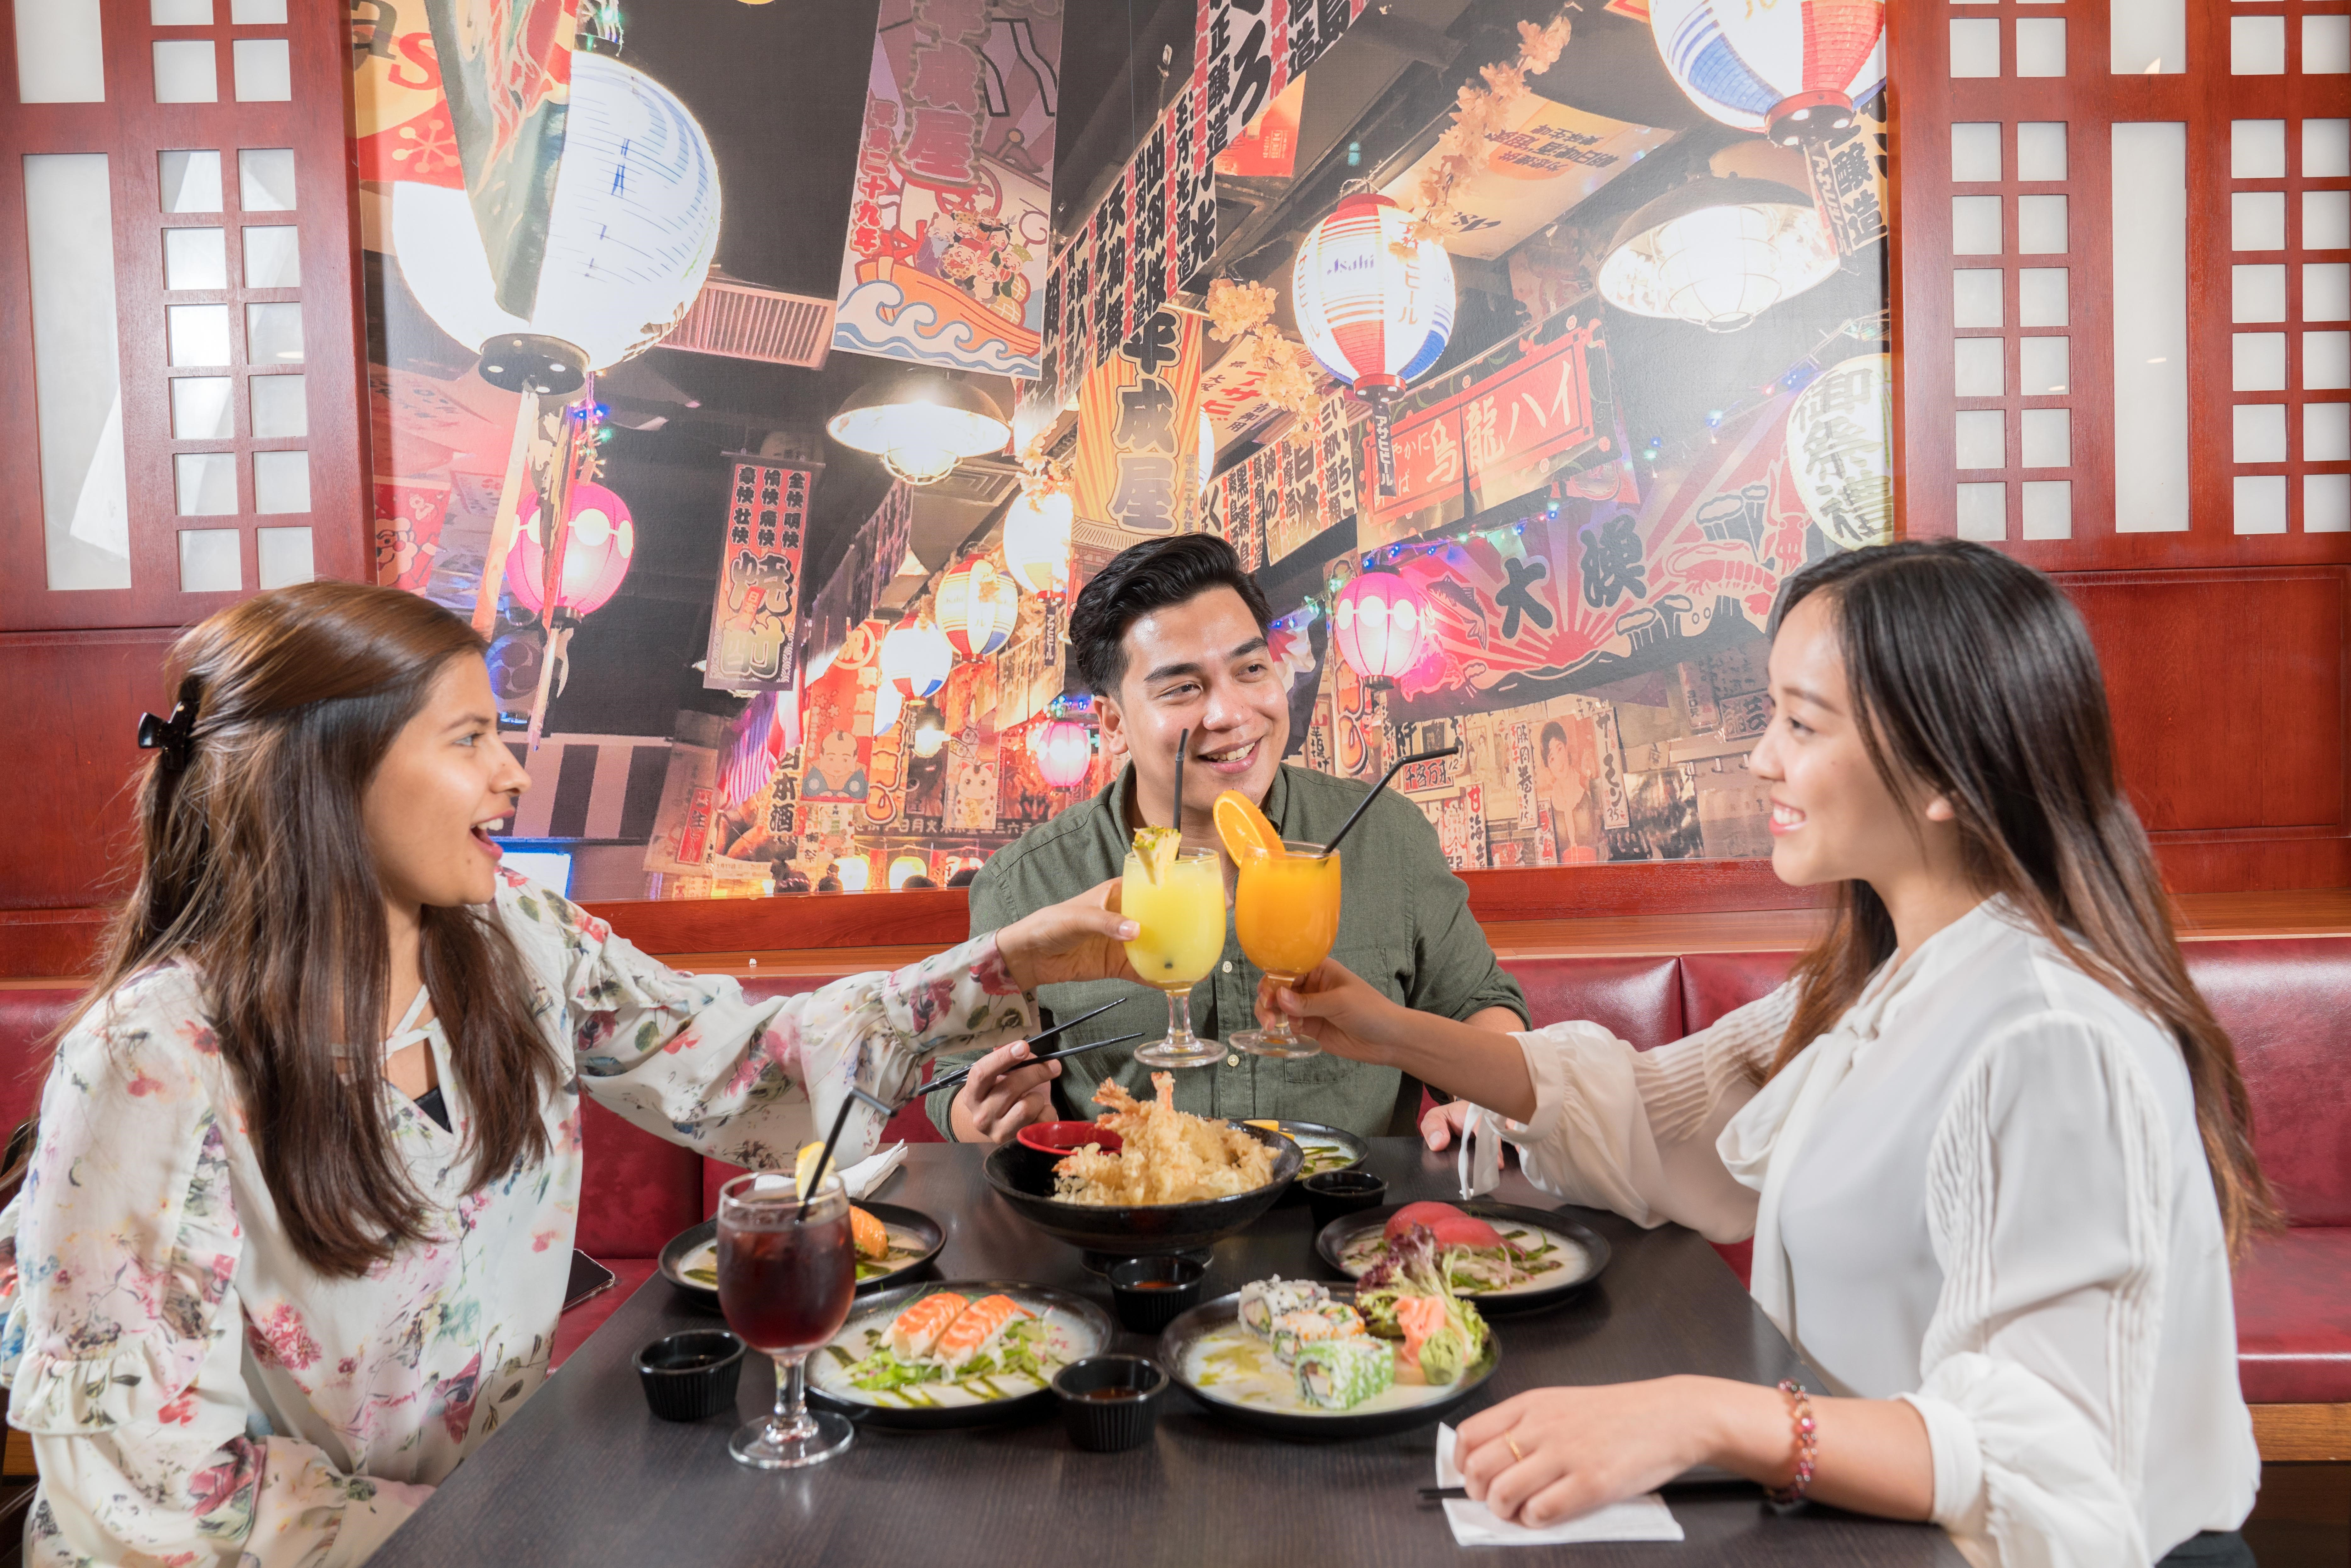 Discover Tokyo Tokyo Central – The New Home of Authentic Affordable Asian Cuisine in the Heart of Deira